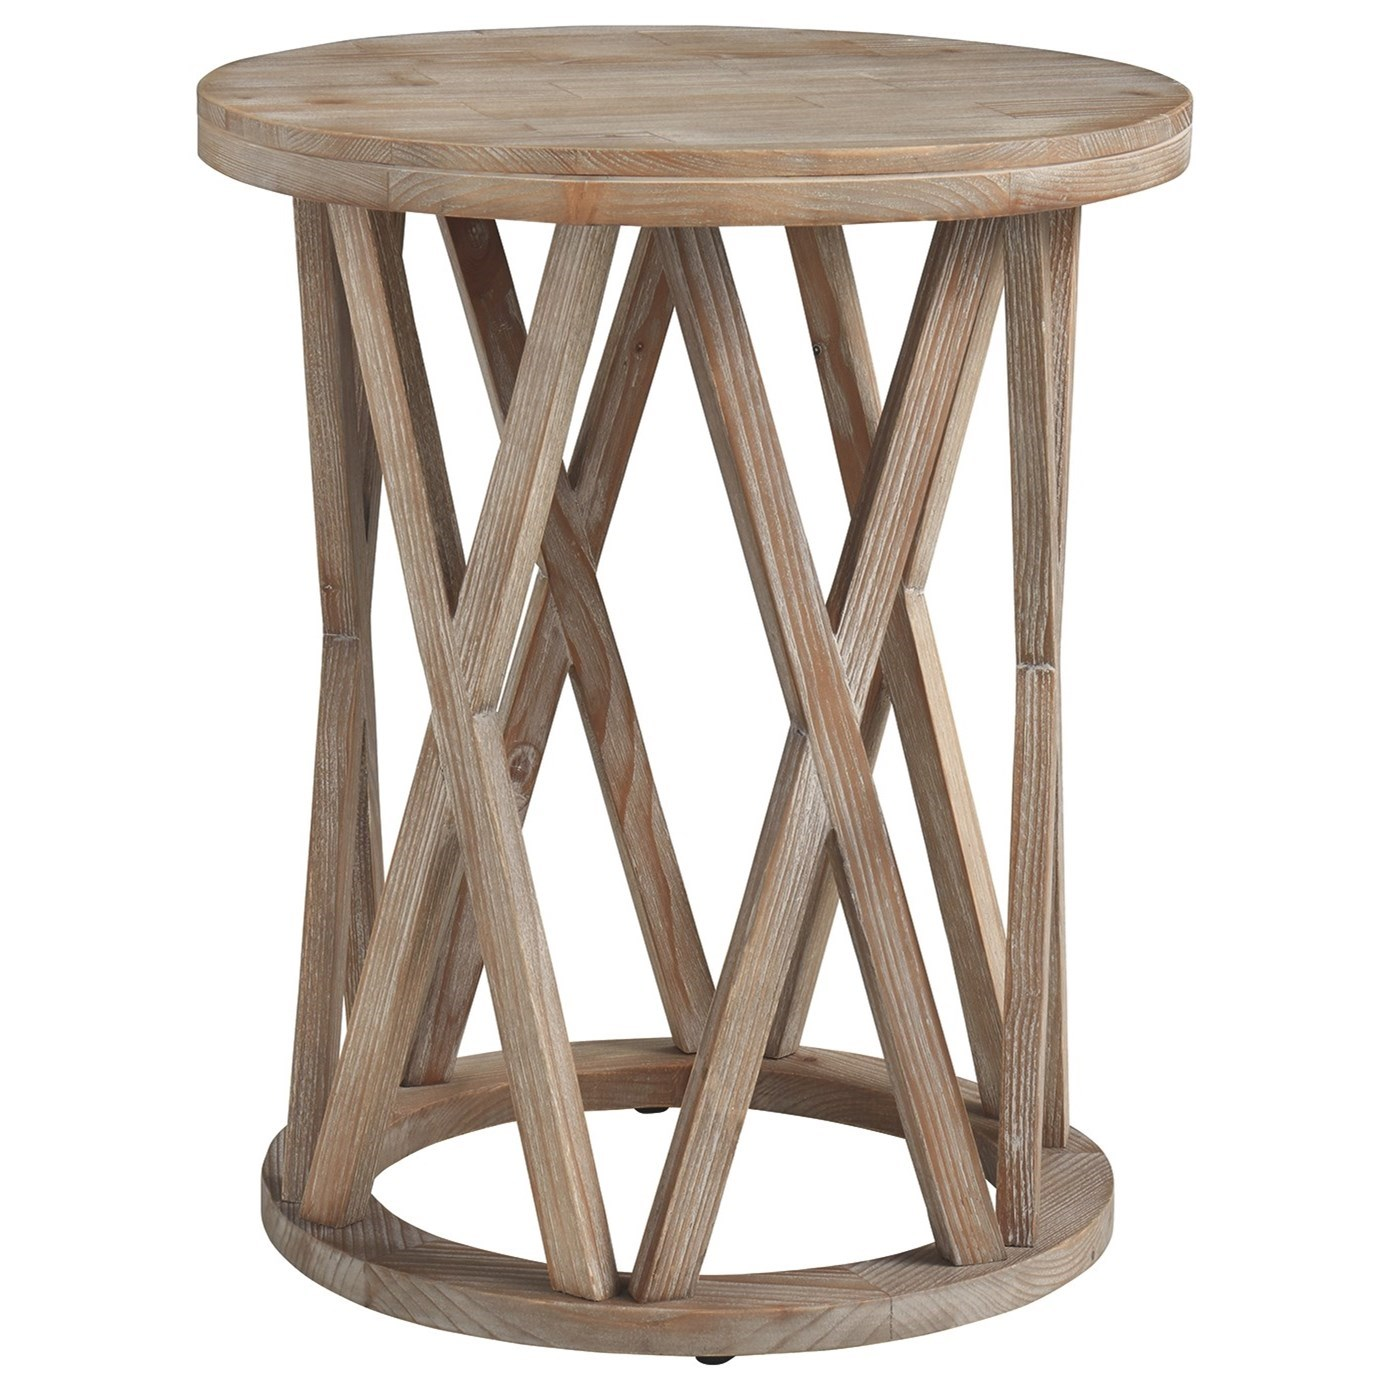 Glasslore End Table by Signature Design at Fisher Home Furnishings